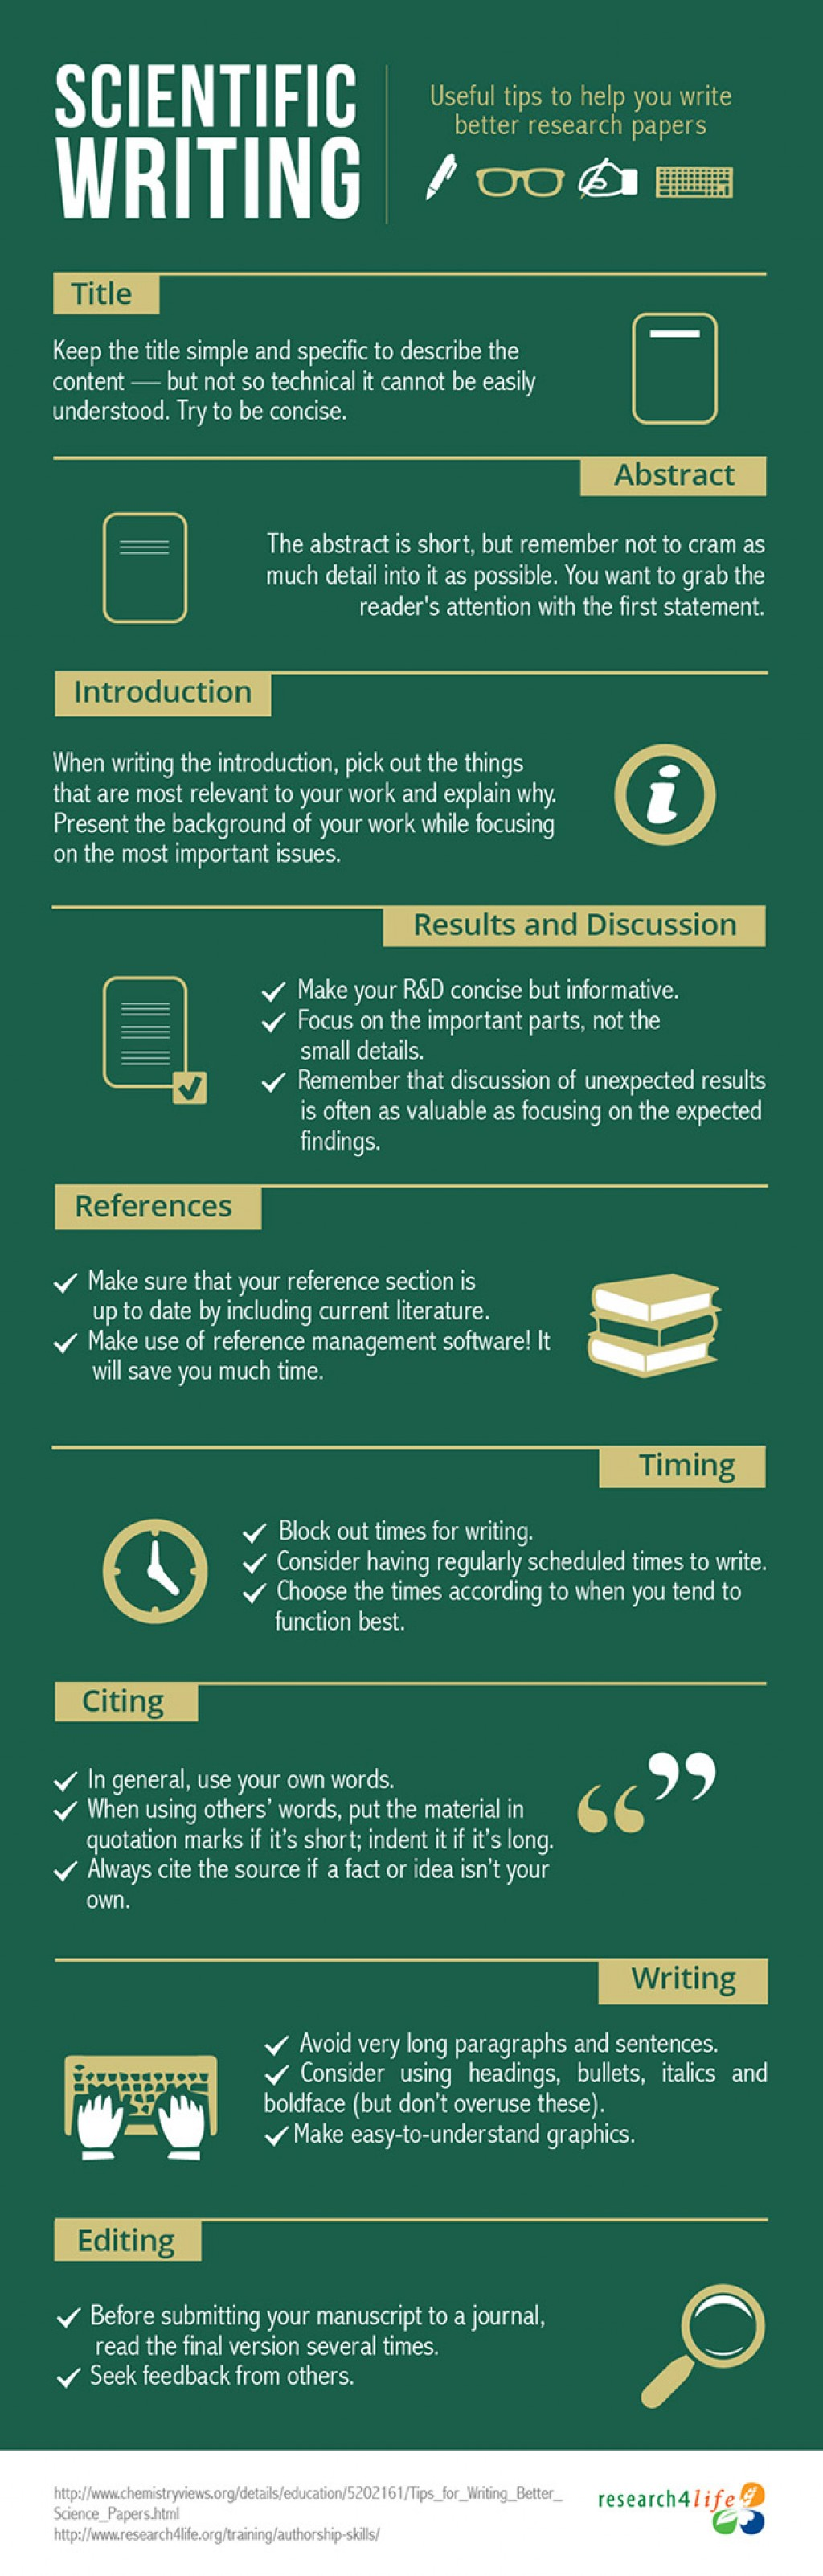 018 How To Write Research Paper Fast And Easy Infographic Science Writing Singular A Large